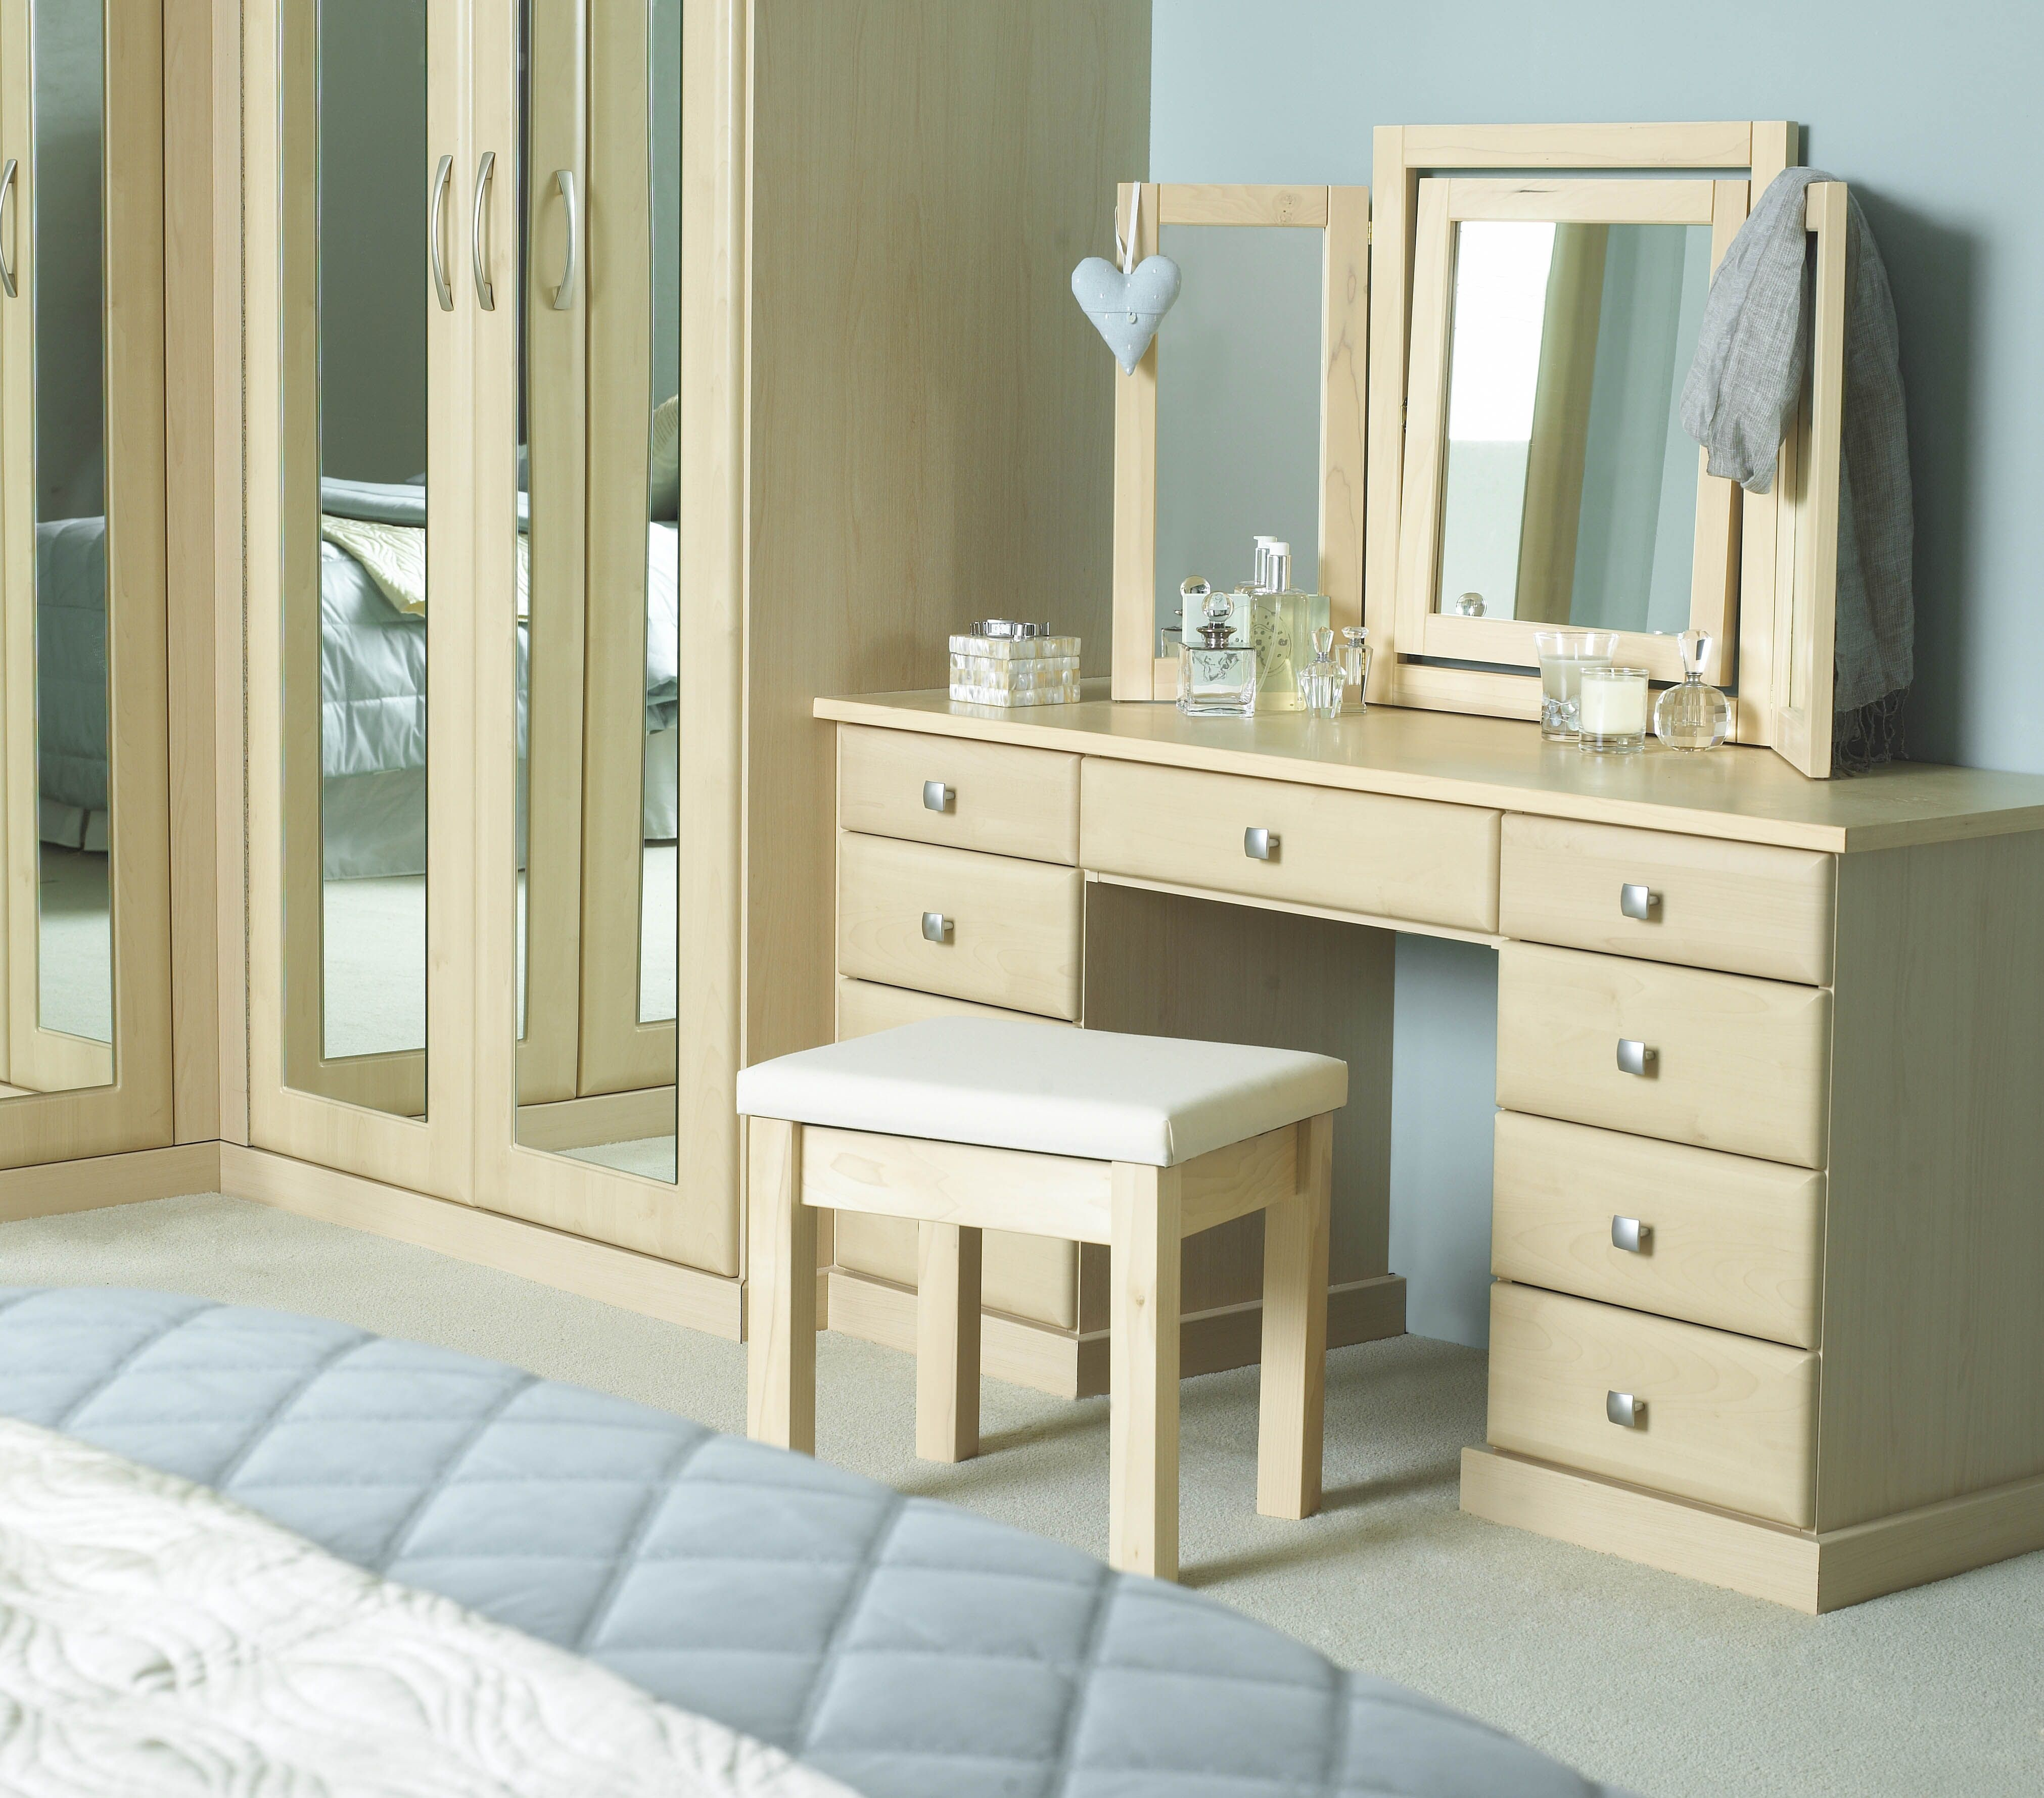 set selected the bedroom vanity regarding of objects use reflect makeup corner furniture that table image black